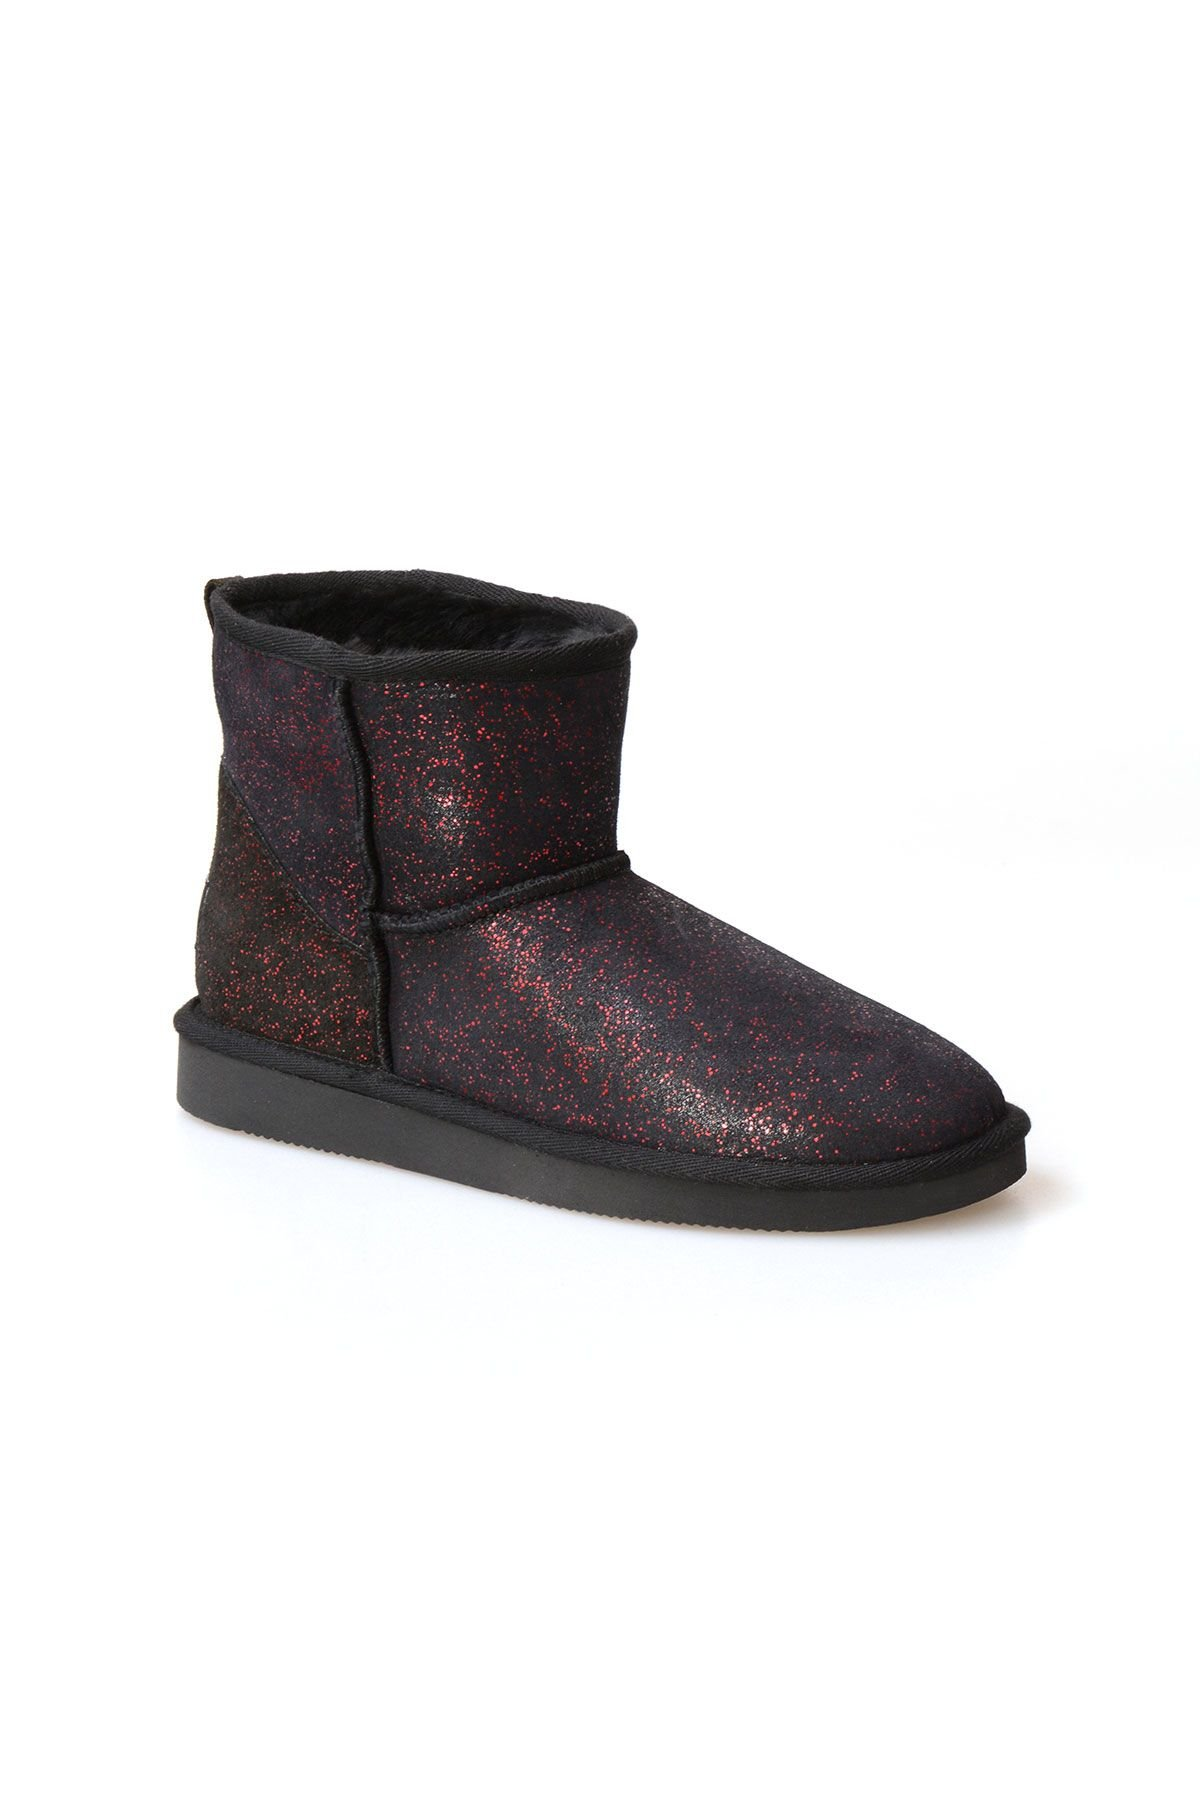 Pegia Genuine Sheepskin Galaxy Printed Women's Ankle Boots 191029 Red